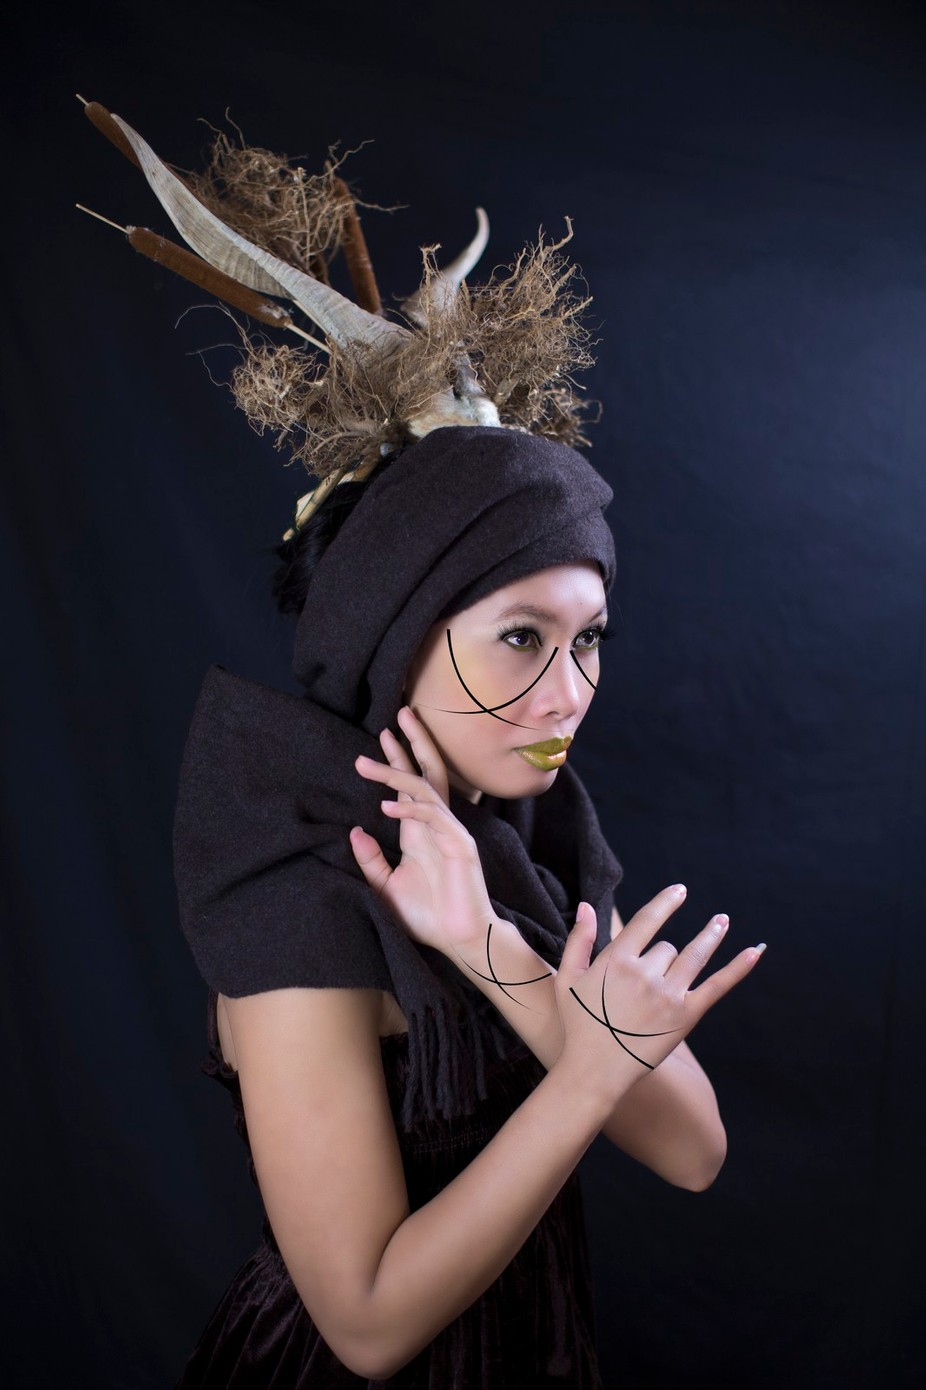 The Deer In Her by GigiJim08 - Paint And Makeup Photo Contest